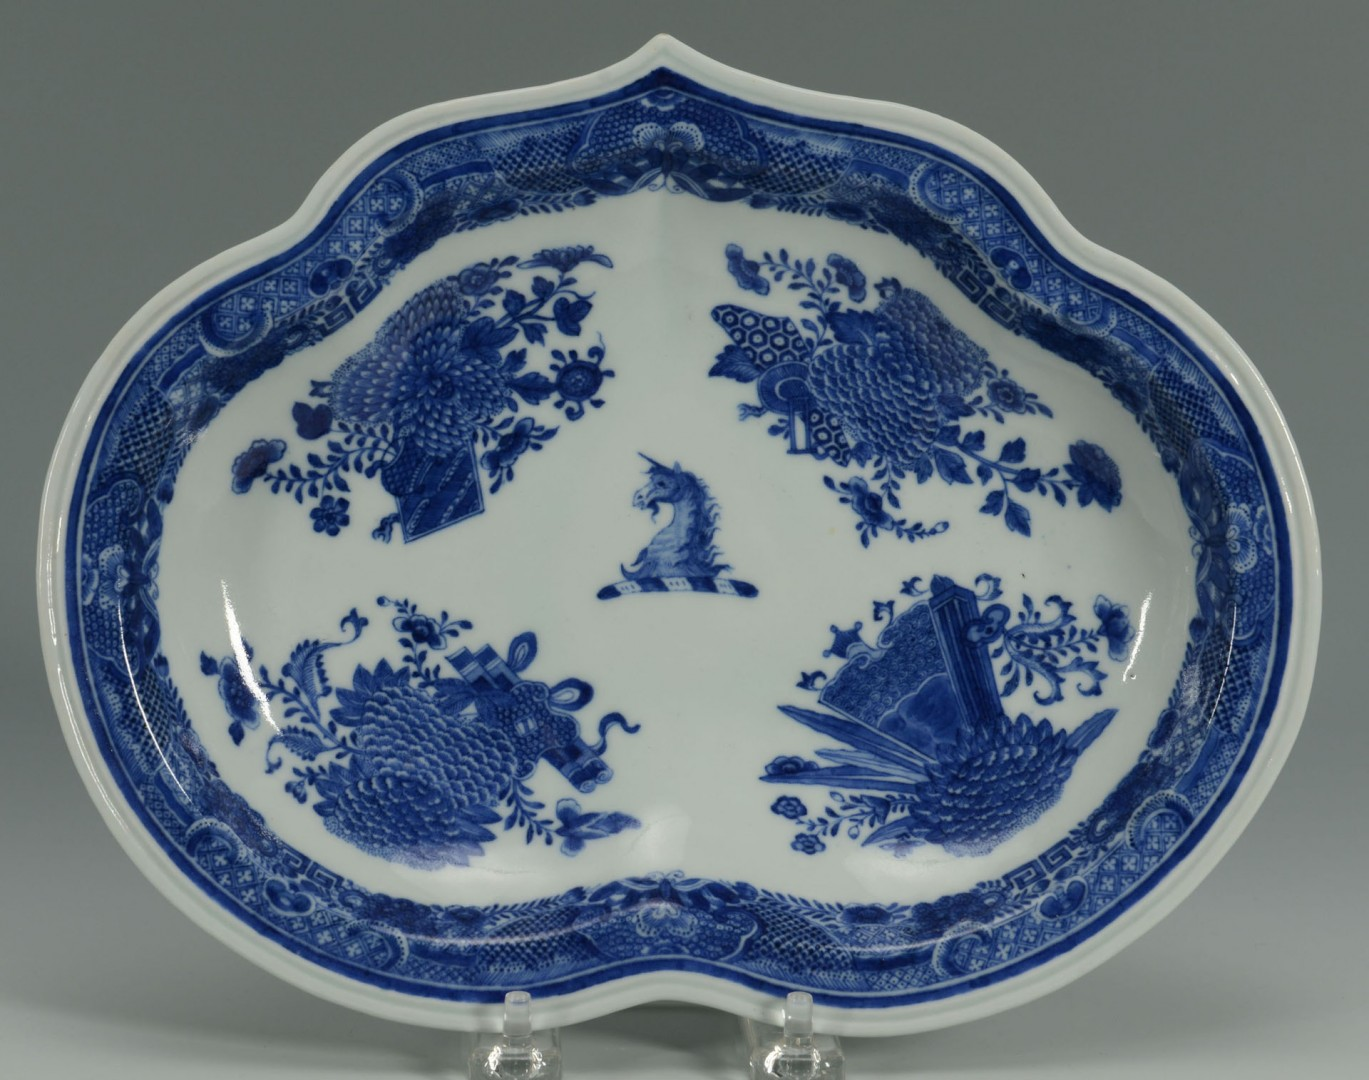 3 Chinese Export Porcelain Blue Fitzhugh Items